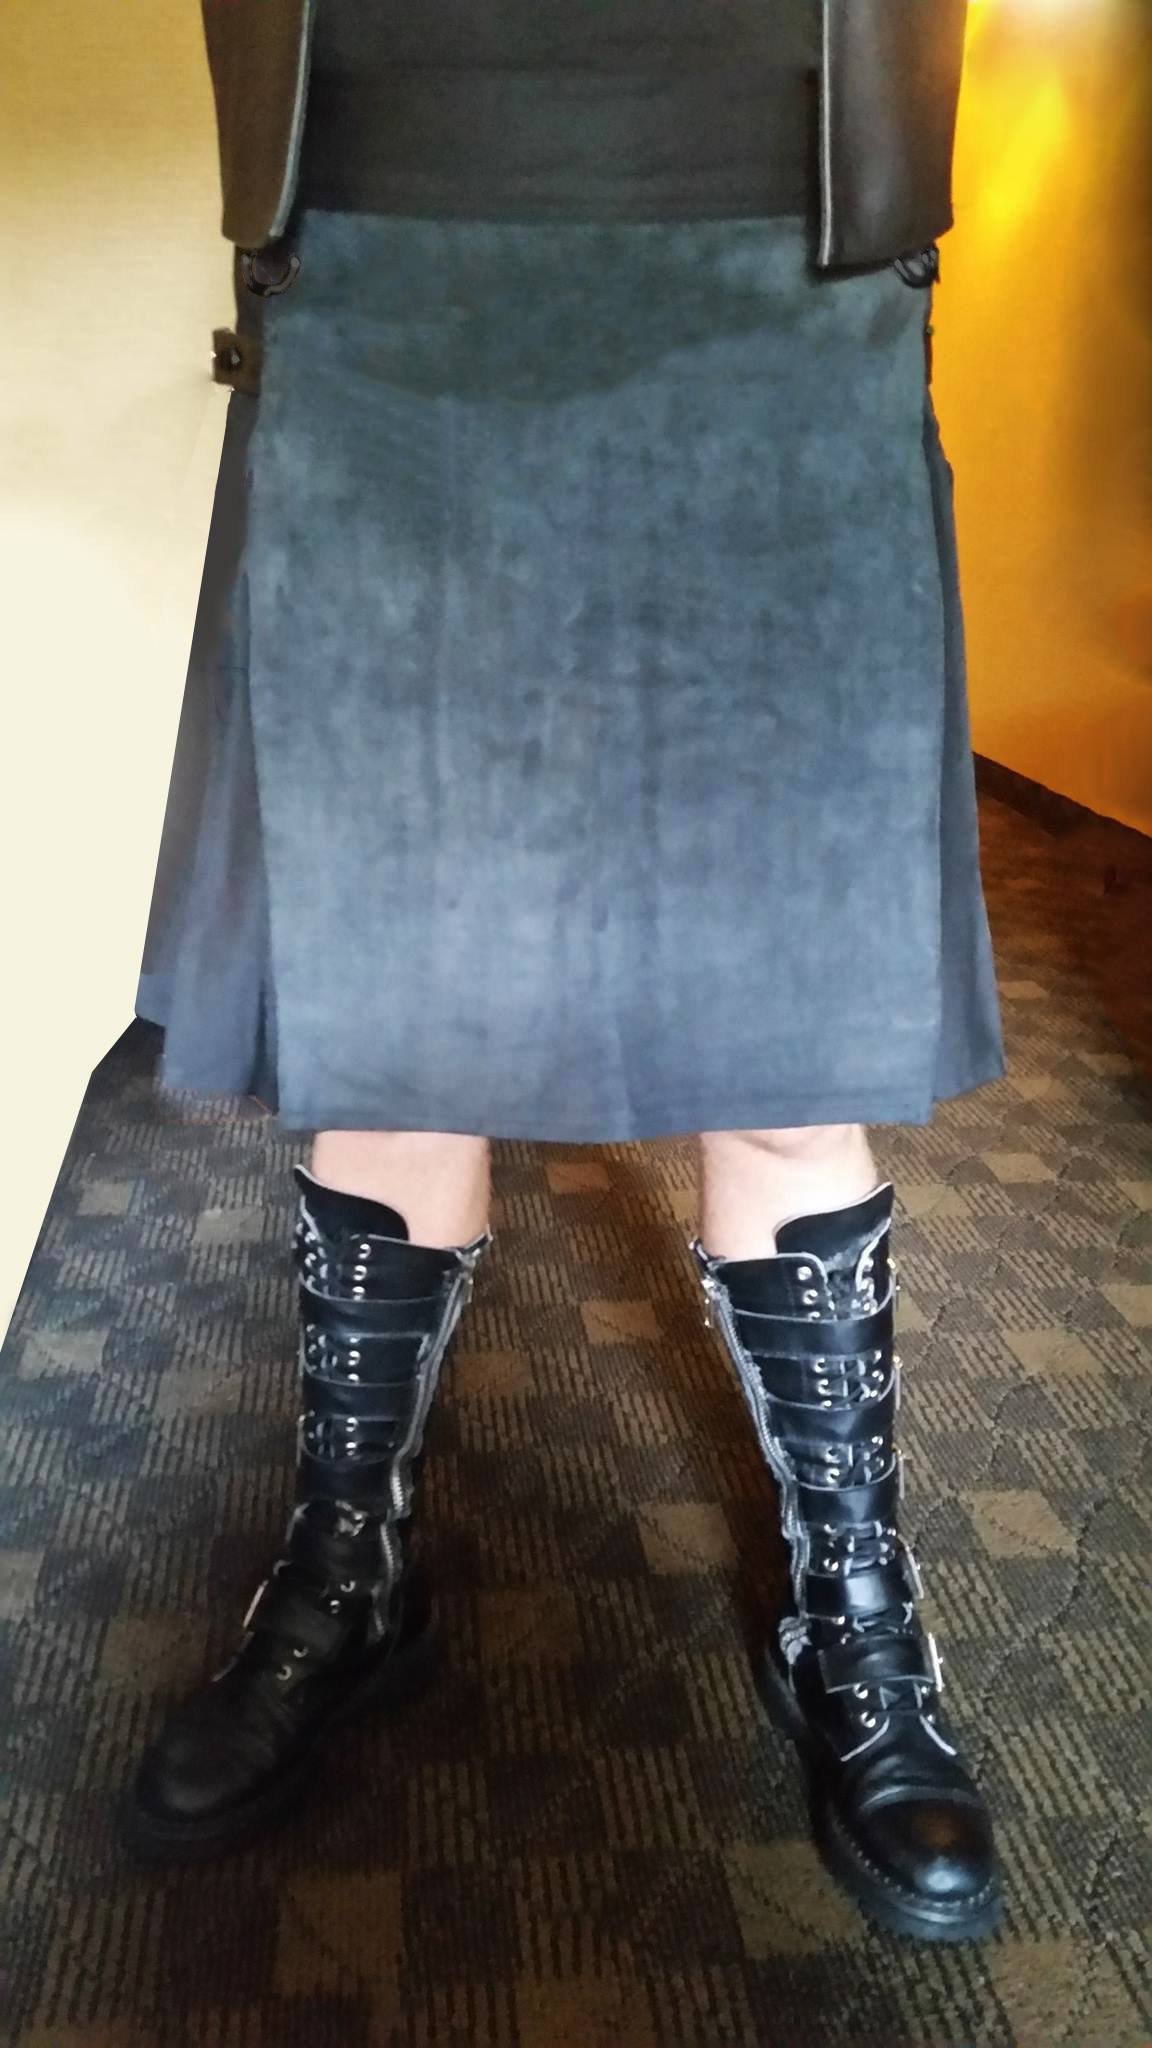 kilt, black kilt, duck cloth kilt, cotton kilt, leather kilt, mens kilt, adjustable kilt